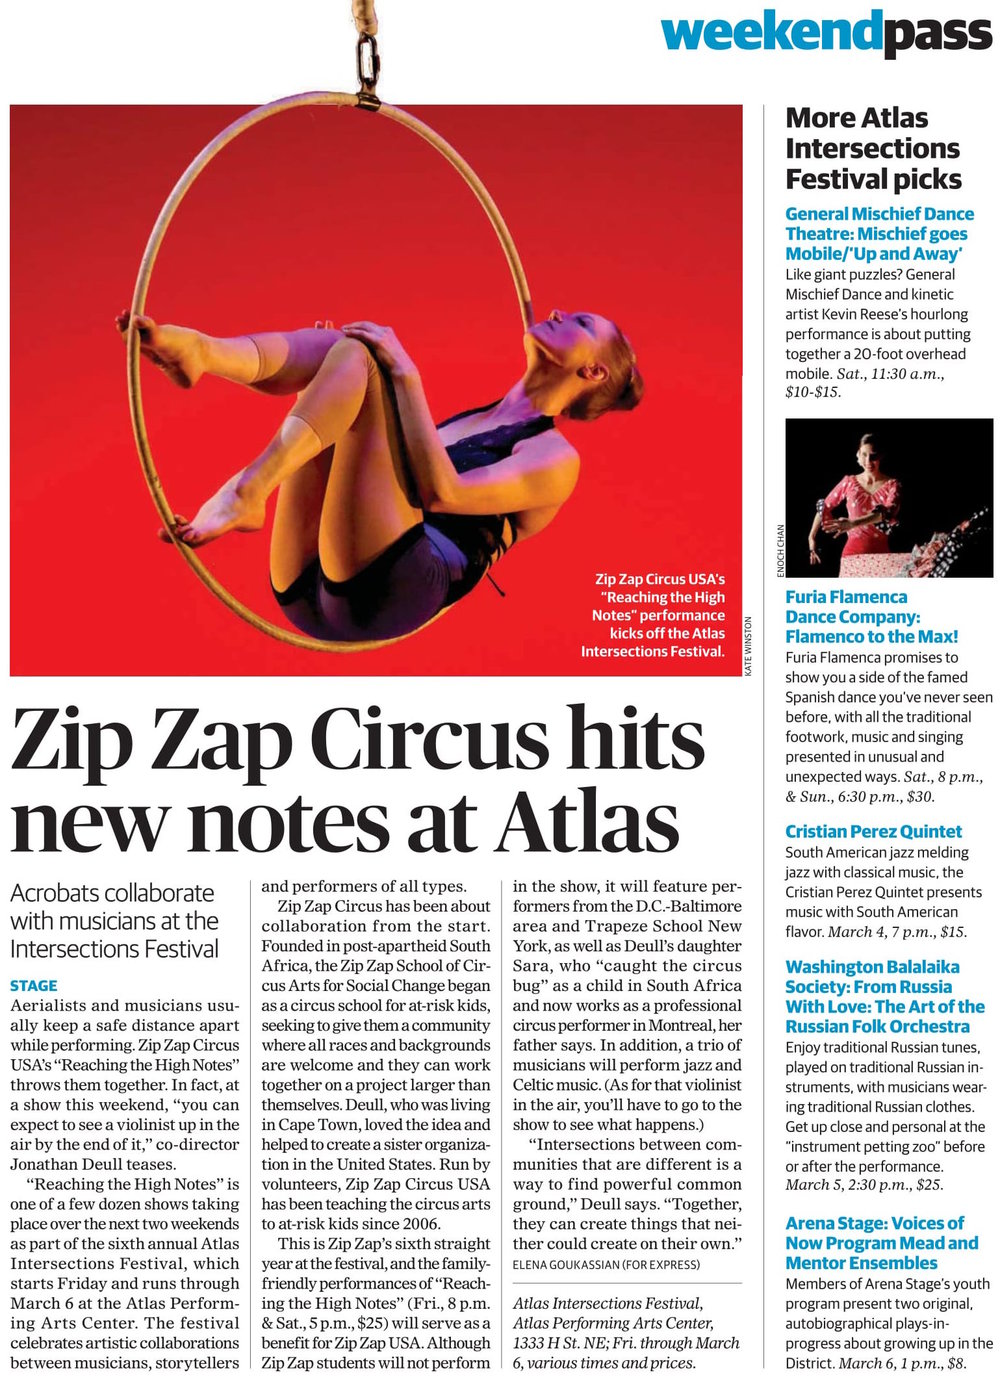 https://www.washingtonpost.com/express/wp/2016/02/24/zip-zap-circus-usa-hits-new-notes-for-the-atlas-intersections-festival    https://www.washingtonpost.com/express/wp/2016/02/24/5-must-see-performances-at-the-atlas-intersections-festival